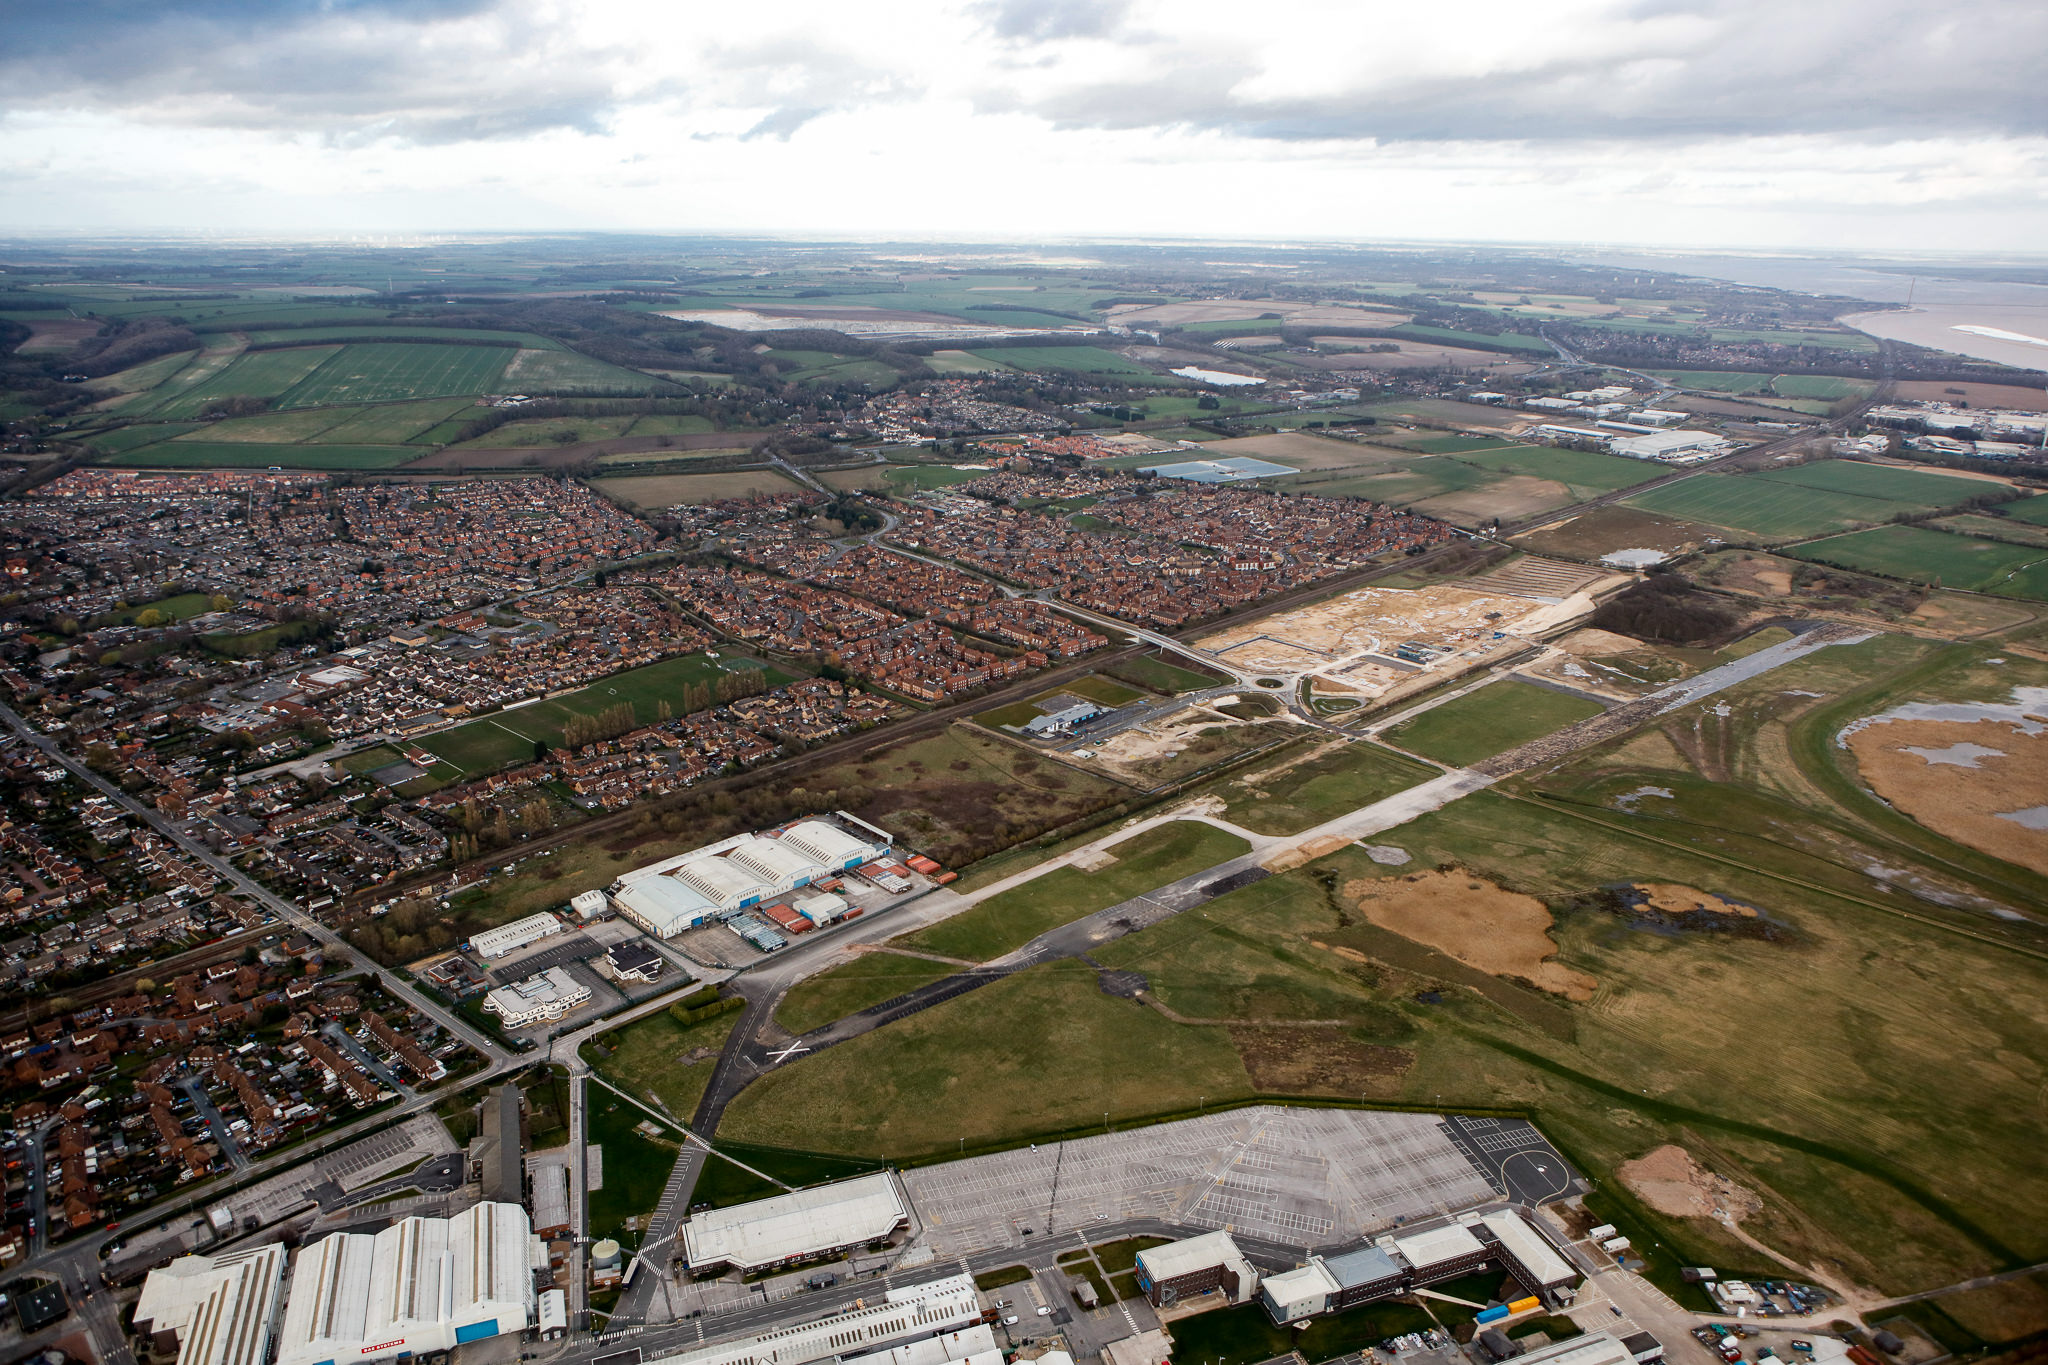 AERIAL SHOT OF BROUGH SOUTH